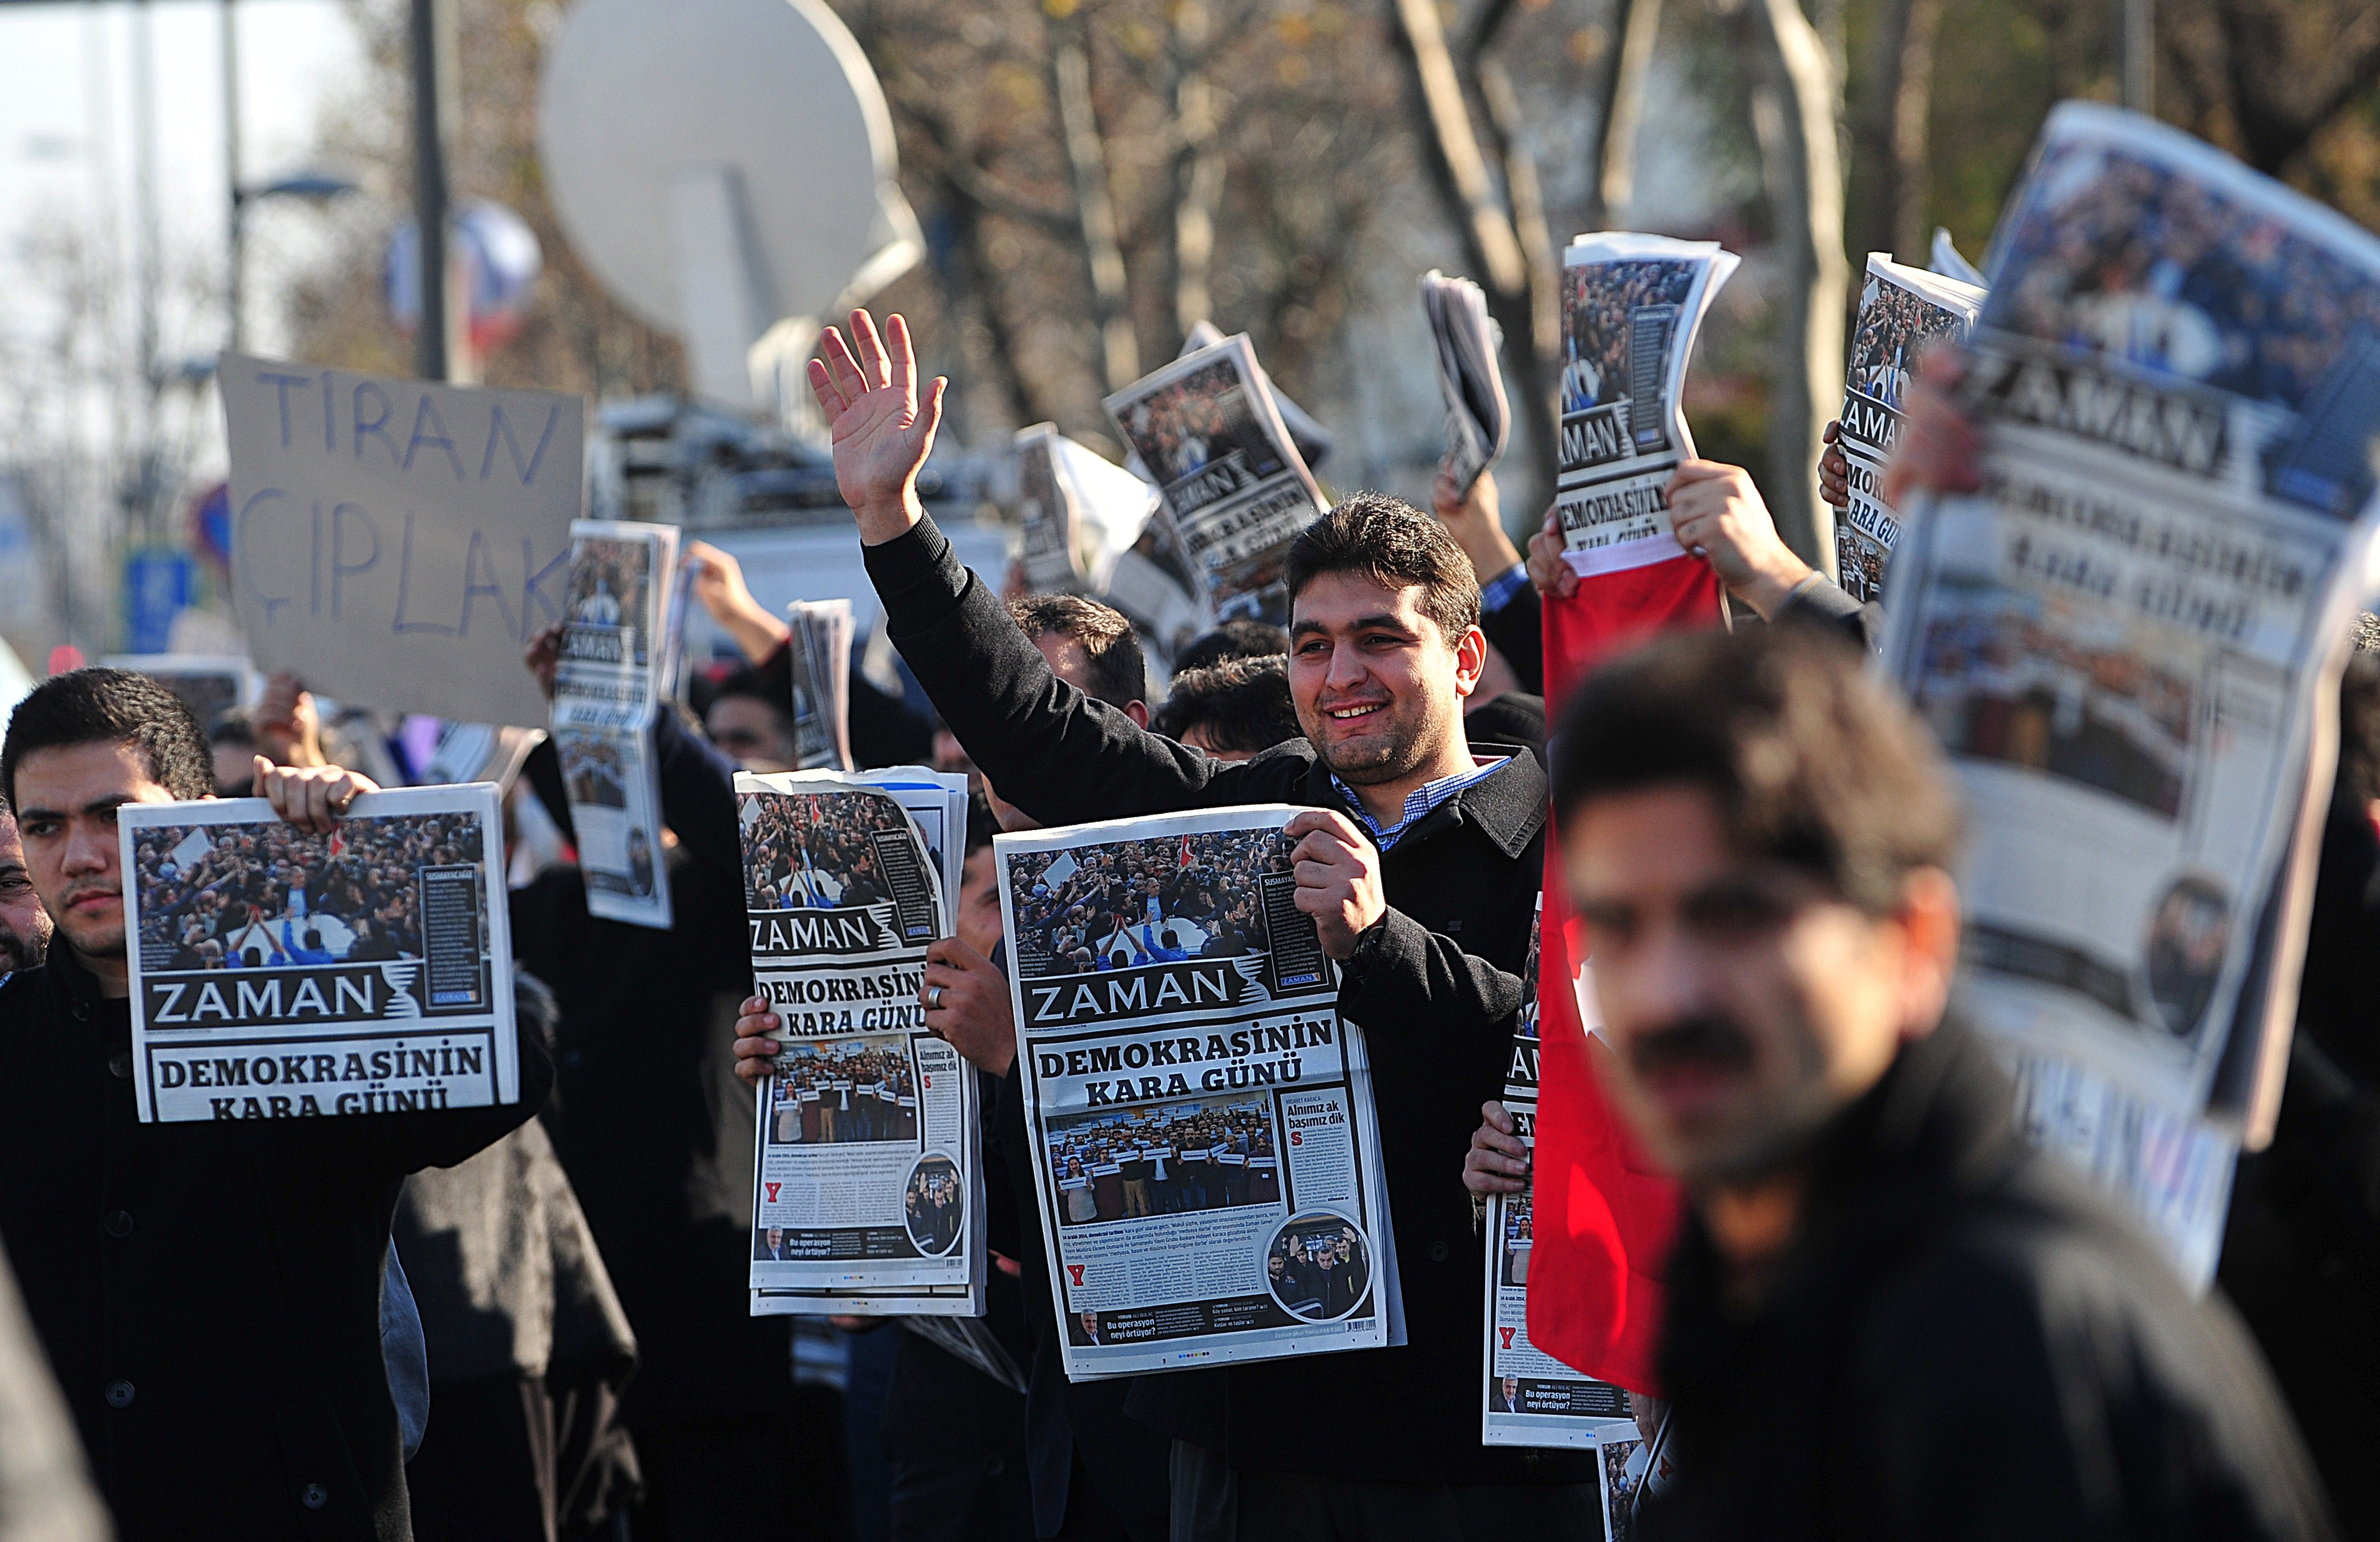 Over two dozen people were arrested in raids against media critical of Turkish president. (OZAN KOSE/AFP/Getty Images)